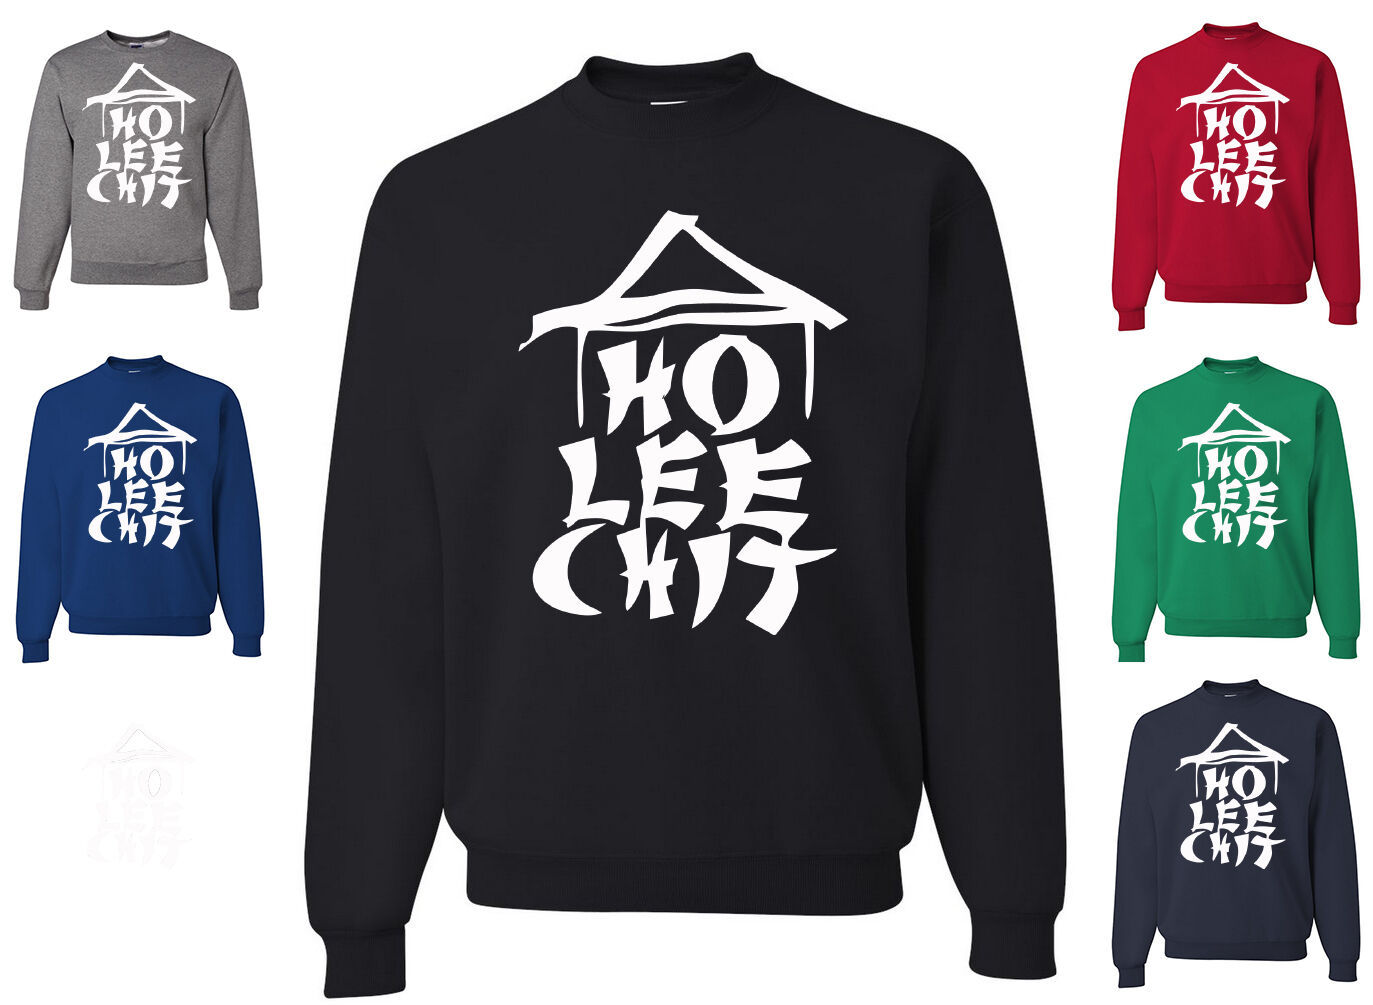 Ho Lee Chit Funny Sweatshirt Holy Sh*t Asian Chinese Character Parody Humor